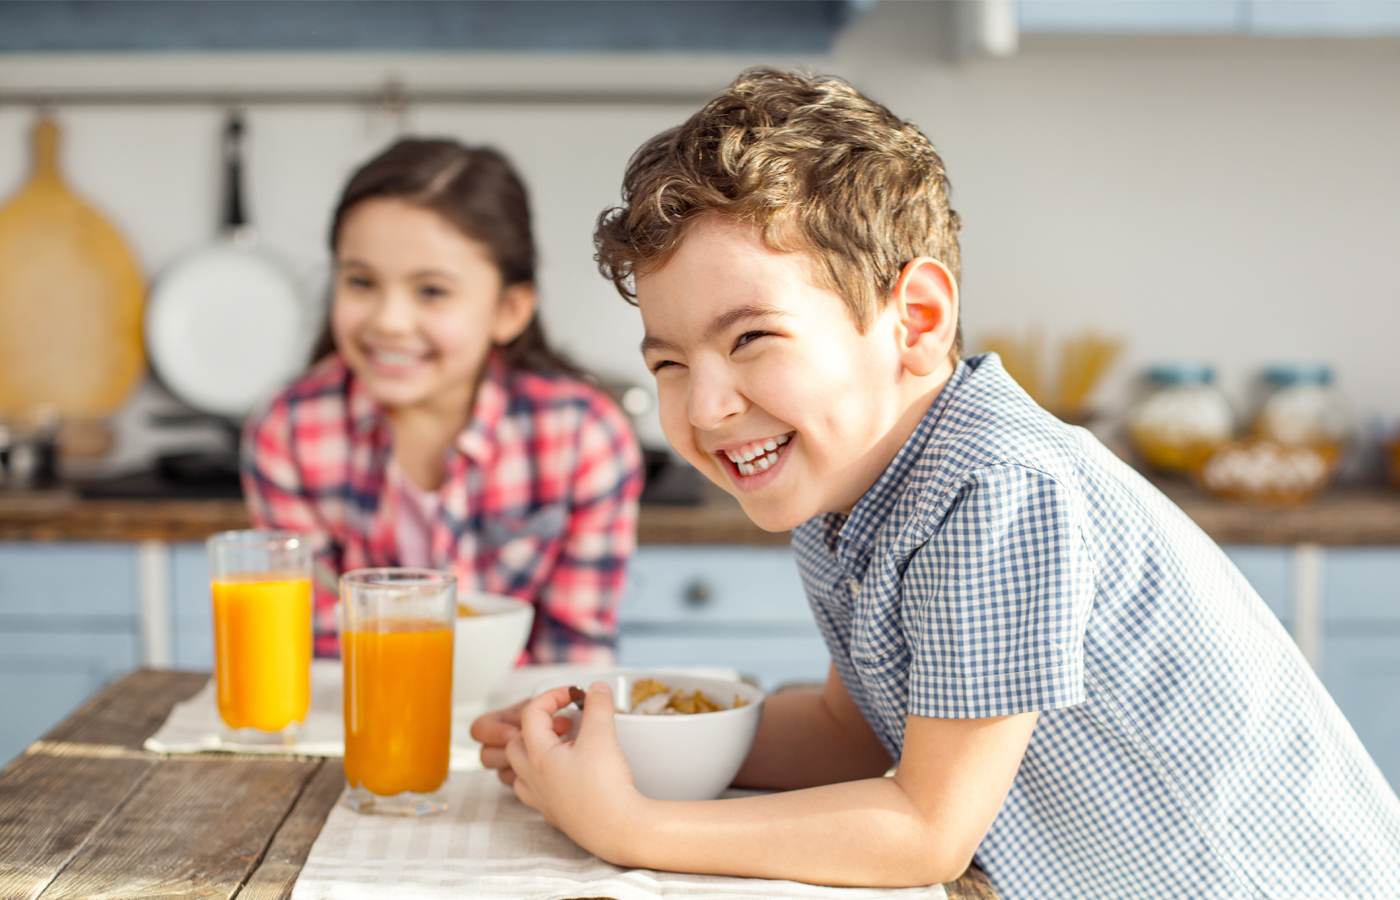 Skipping Breakfast Creates Unhealthy Eaters